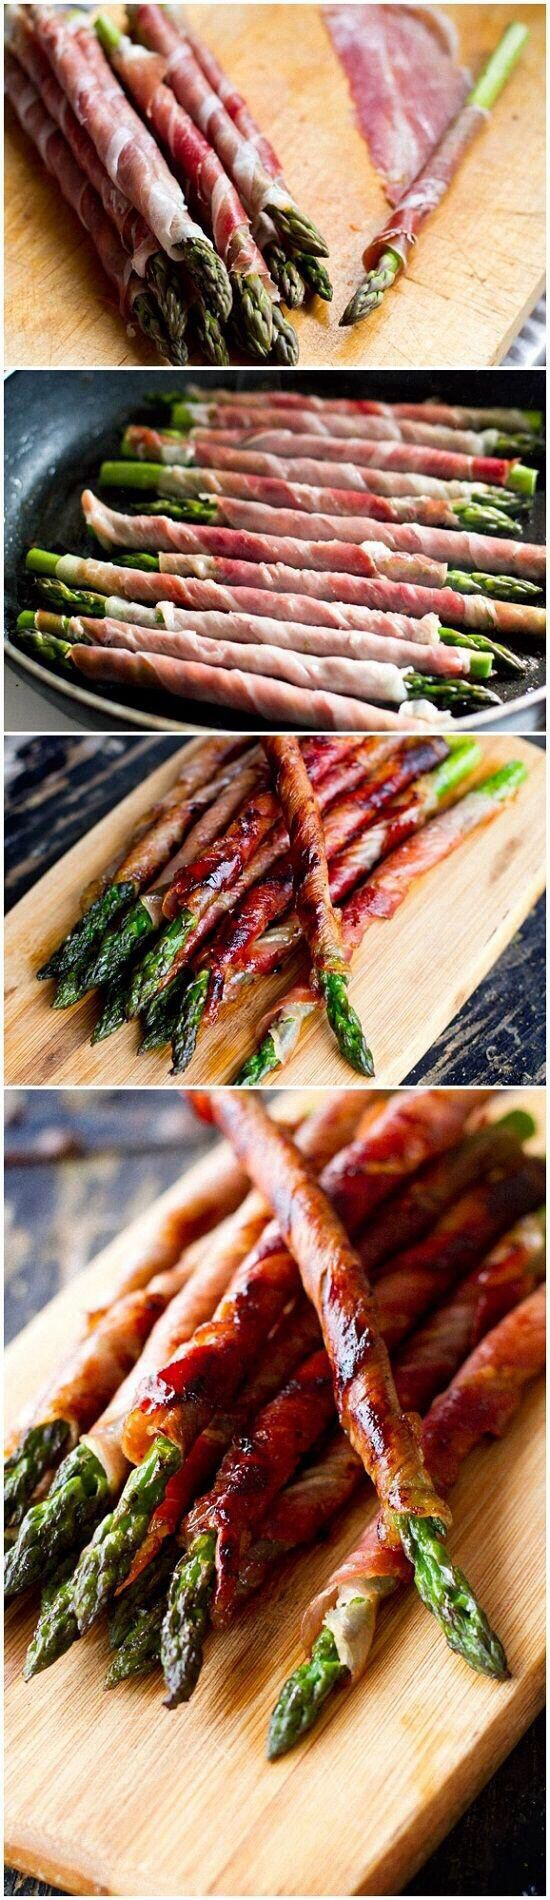 Prosciutto wrapped Asparagus                                                                                                                                                                                 More